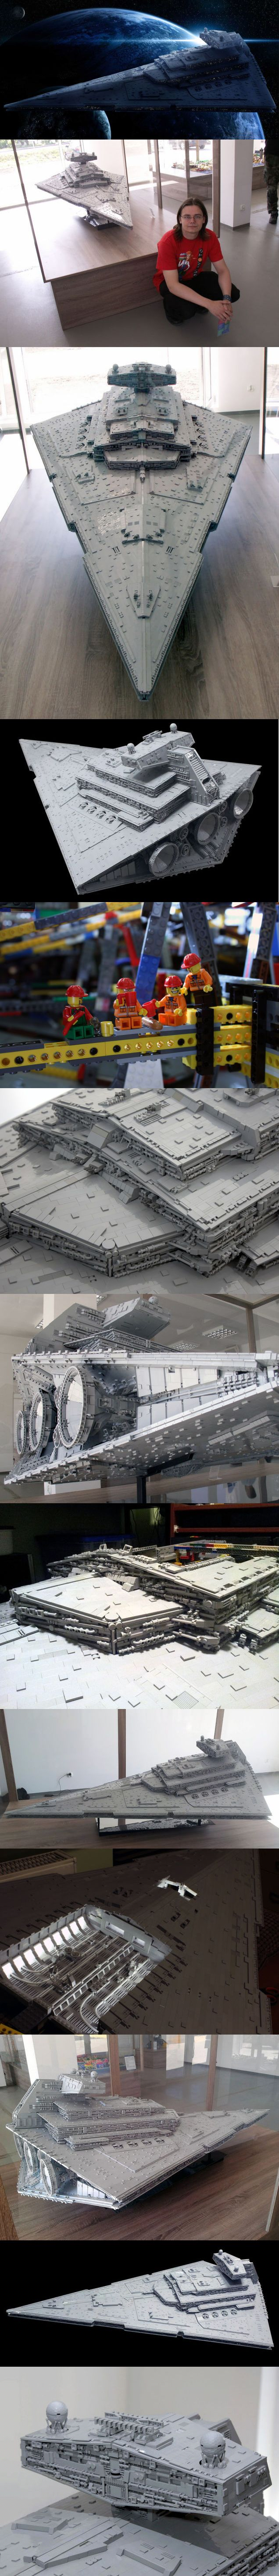 Ivette!!!! Can I????    The biggest, most accurate Lego Imperial Star Destroyer ever built More than 40,000 bricks. 110 pounds (50 kilograms). 6.62 feet long (2.02 meters). 4.1 feet wide (1.25 meters). 1.9 feet tall (58 centimeters). Eight months of design and building. Those are the stats for the biggest, most accurate Lego Imperial Star Destroyer ever built.